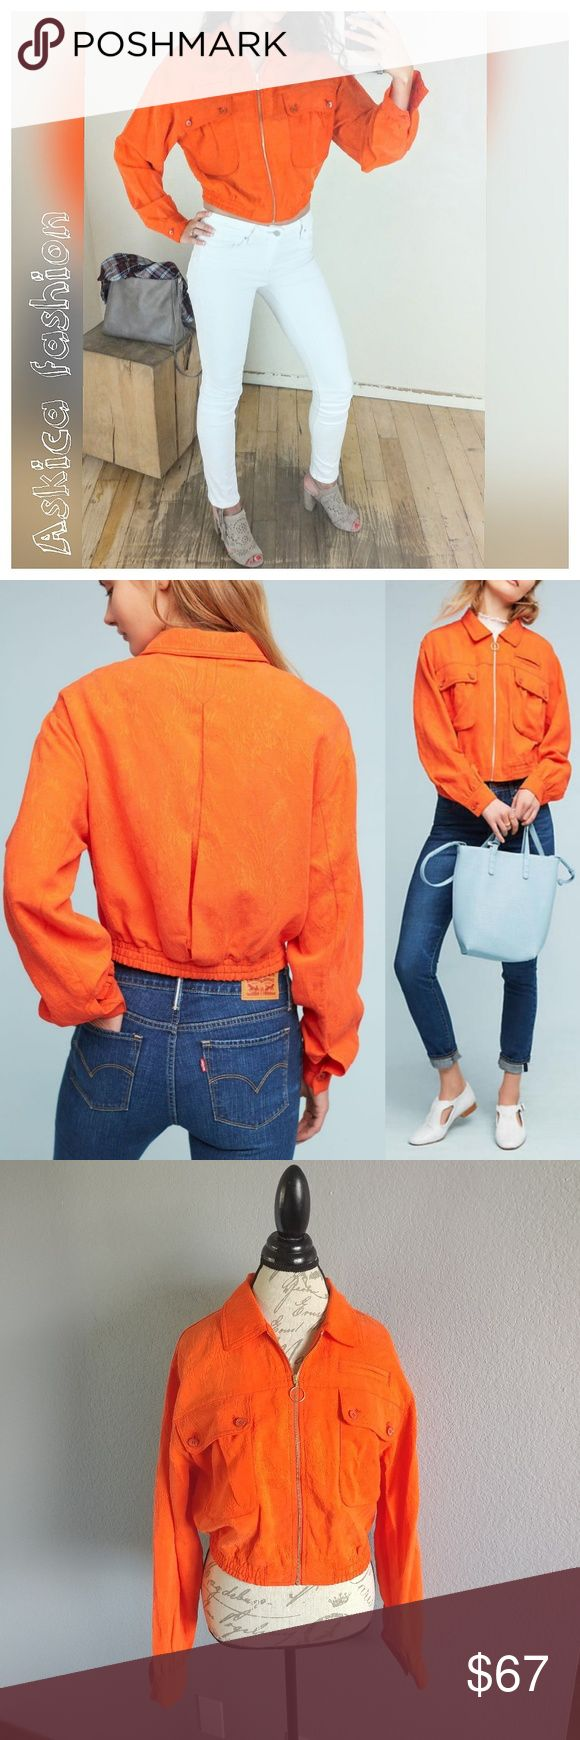 """Anthropologie Cartonnier Jacquard Eisenhower Jacke Details: 61% Lyocell, 39% linen, orange color, Front faux pocket , Front button flap pocket, Zip front, Dry clean, length approx. 20"""". Offers are welcome, but no trades, sorry. Anthropologie Jackets & Coats"""